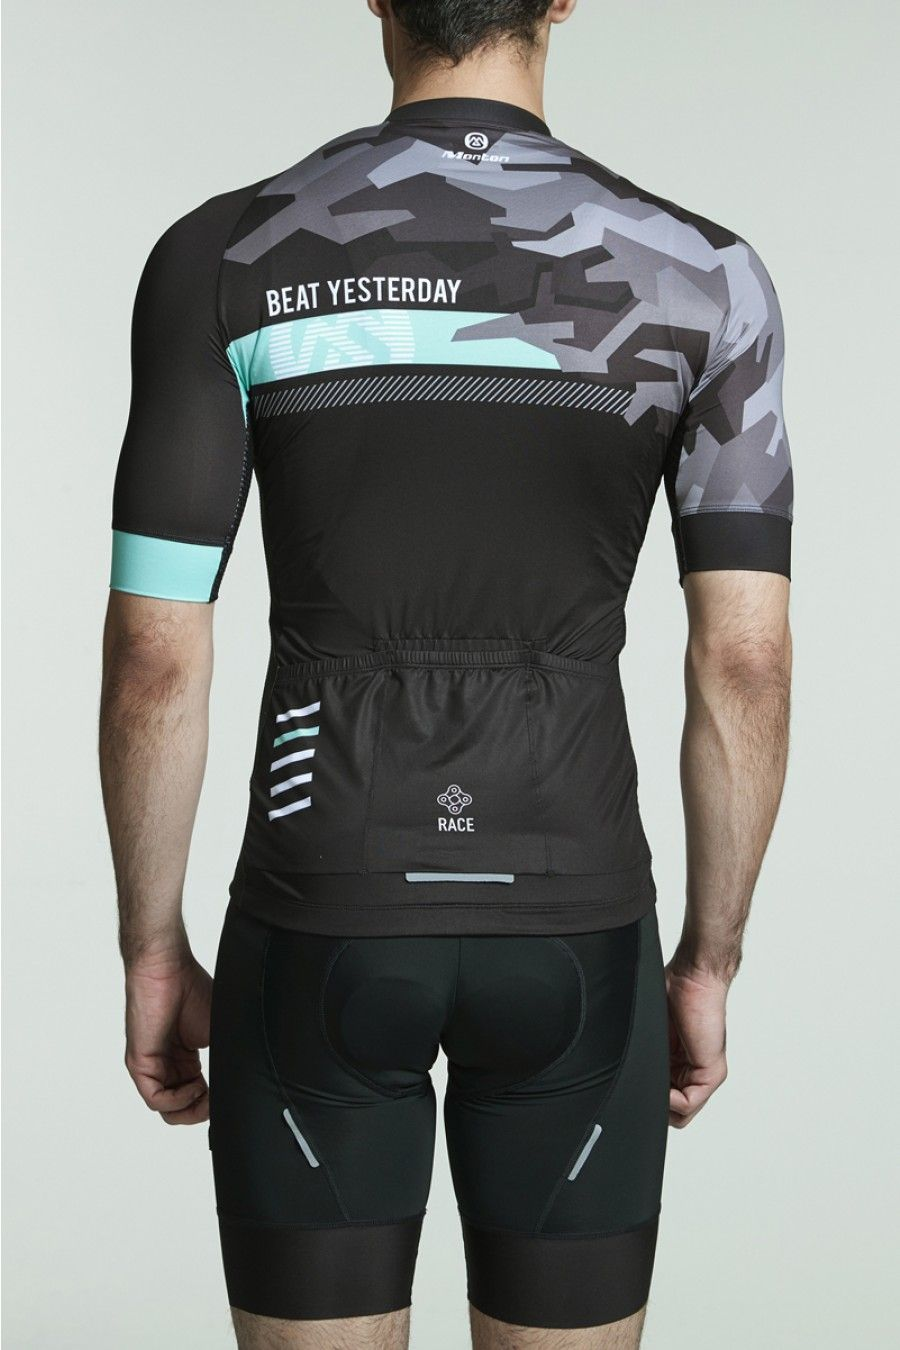 Cool Cycling Jersey Bike Jersey Design Cycling Jersey Design Cycling Design